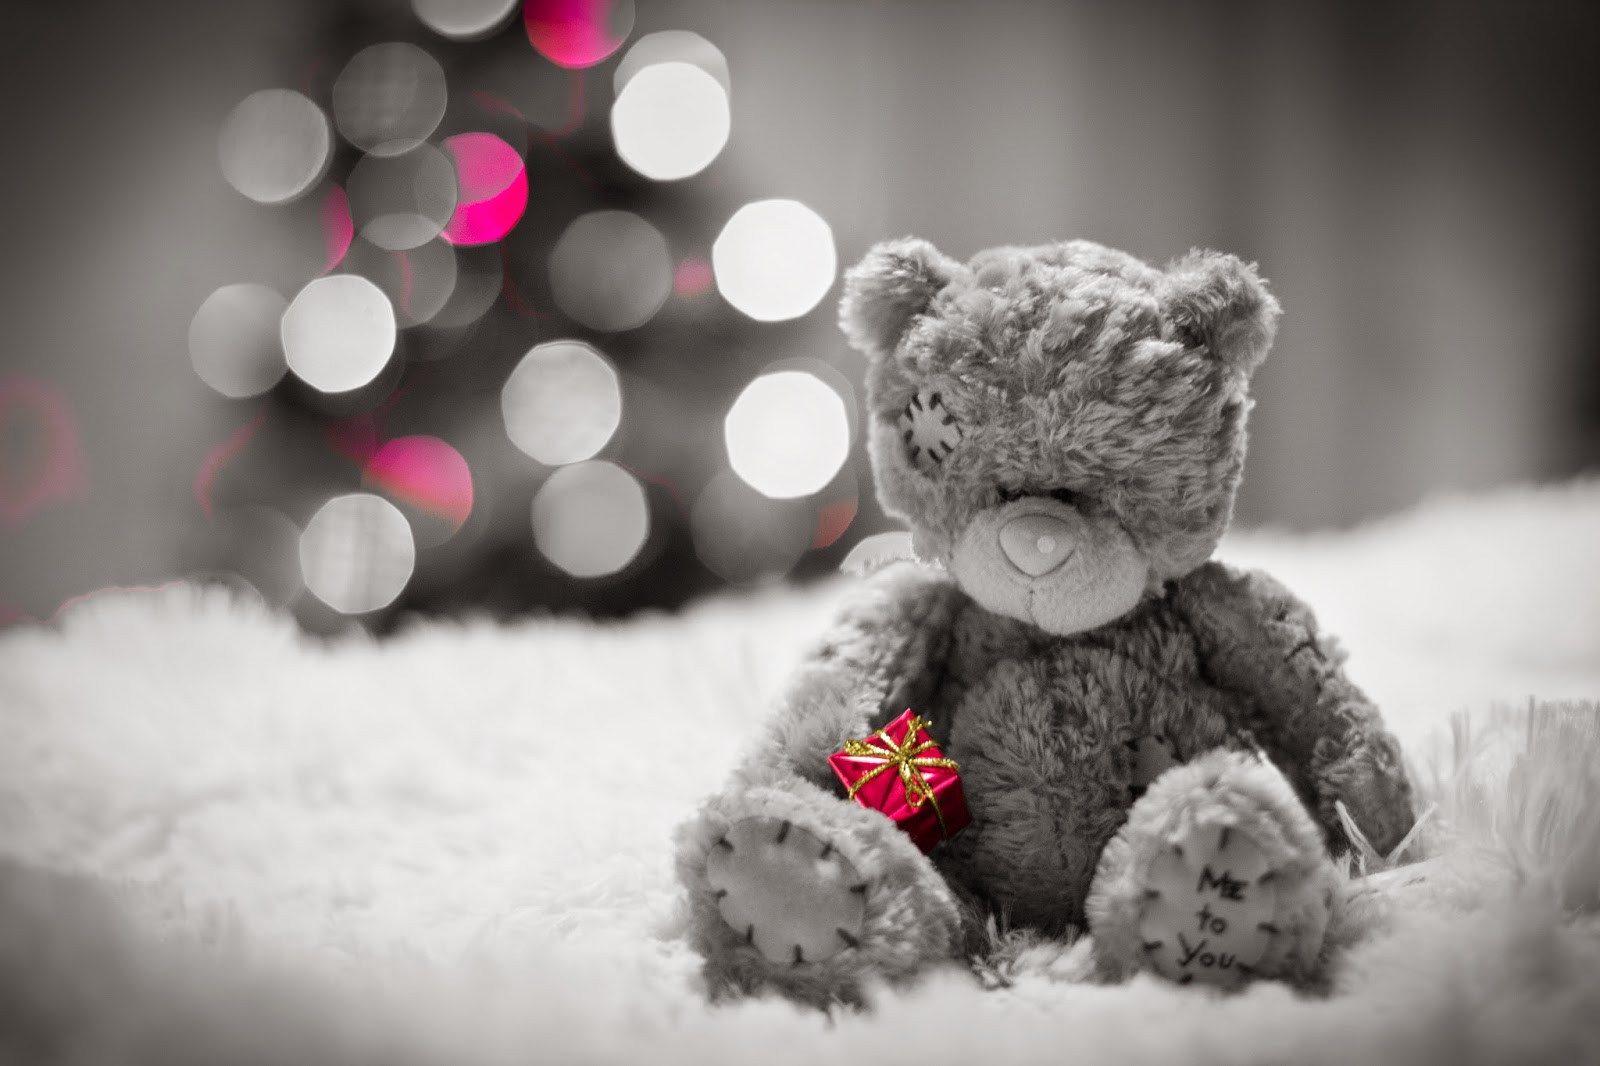 Teddy-bear-sad-pictures-stock-image-download-HD-5184x3456.jpg